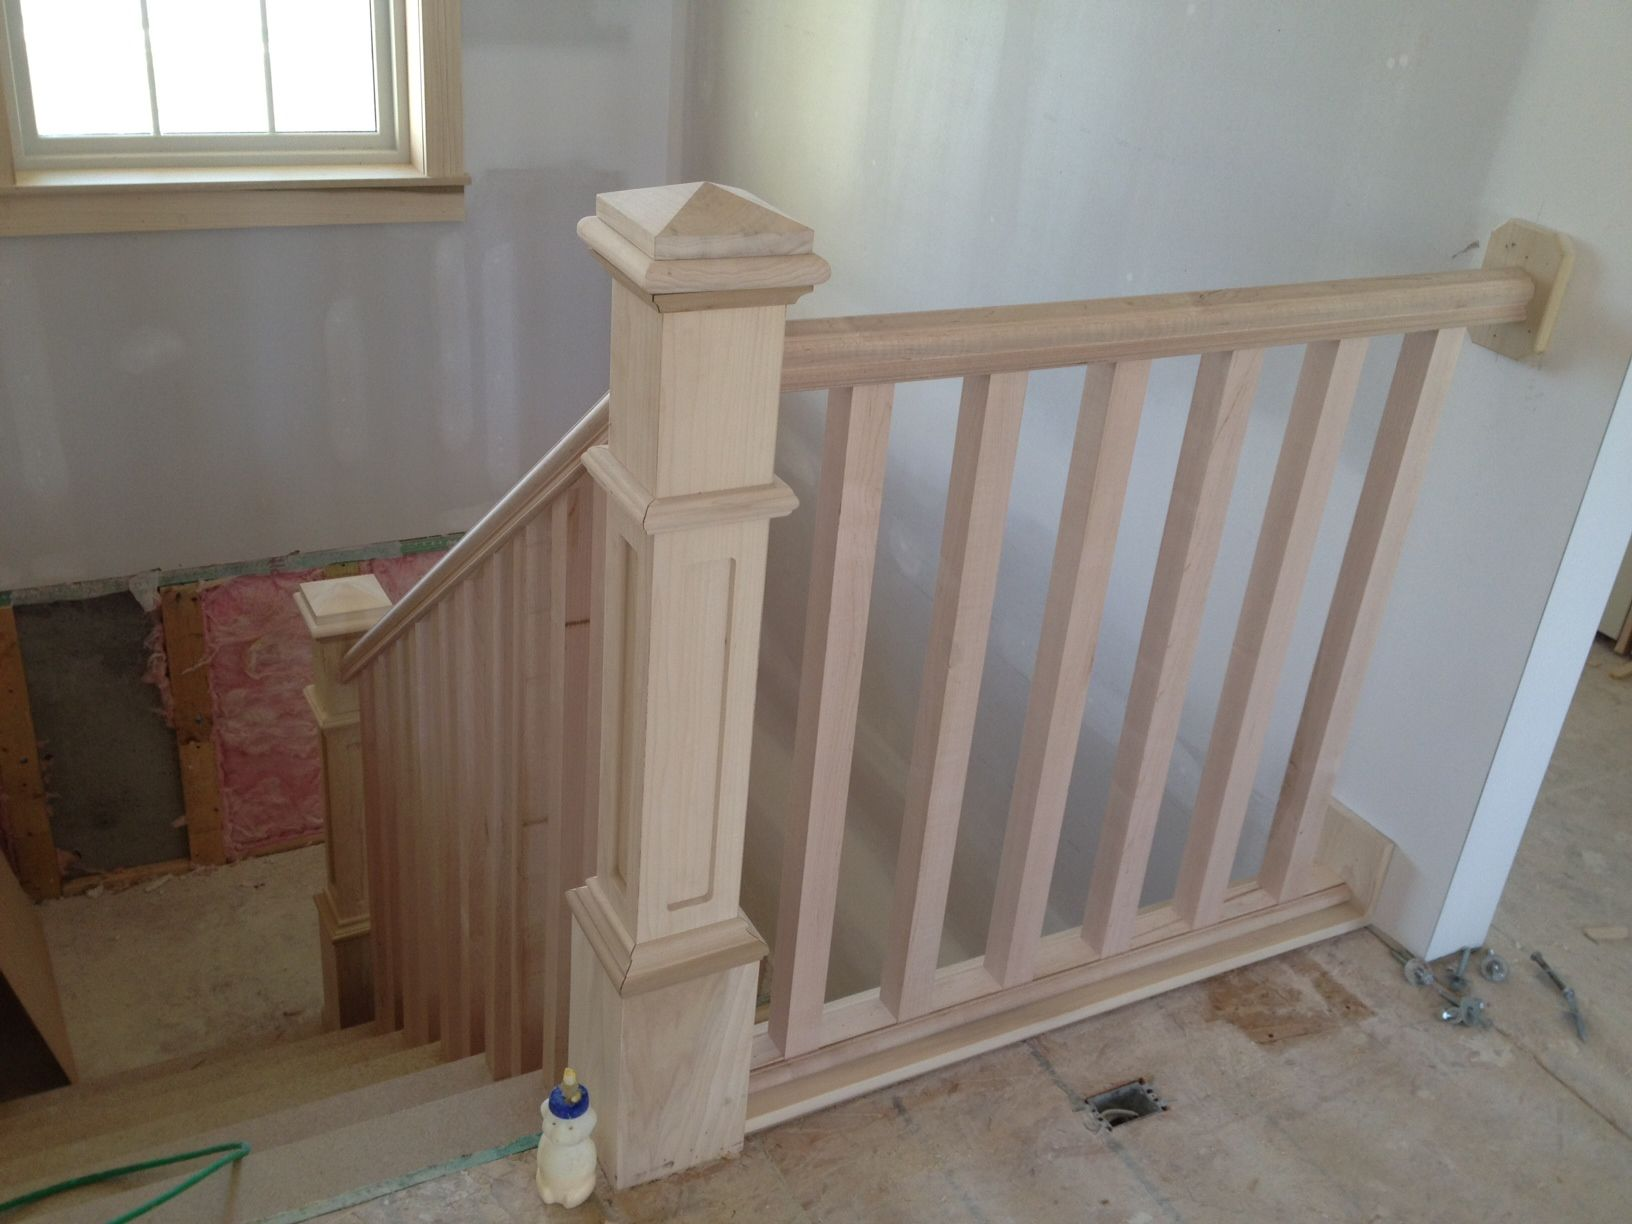 Interior stair railings stair rails decorating ideas design stair railings pinterest for Wooden handrails for stairs interior